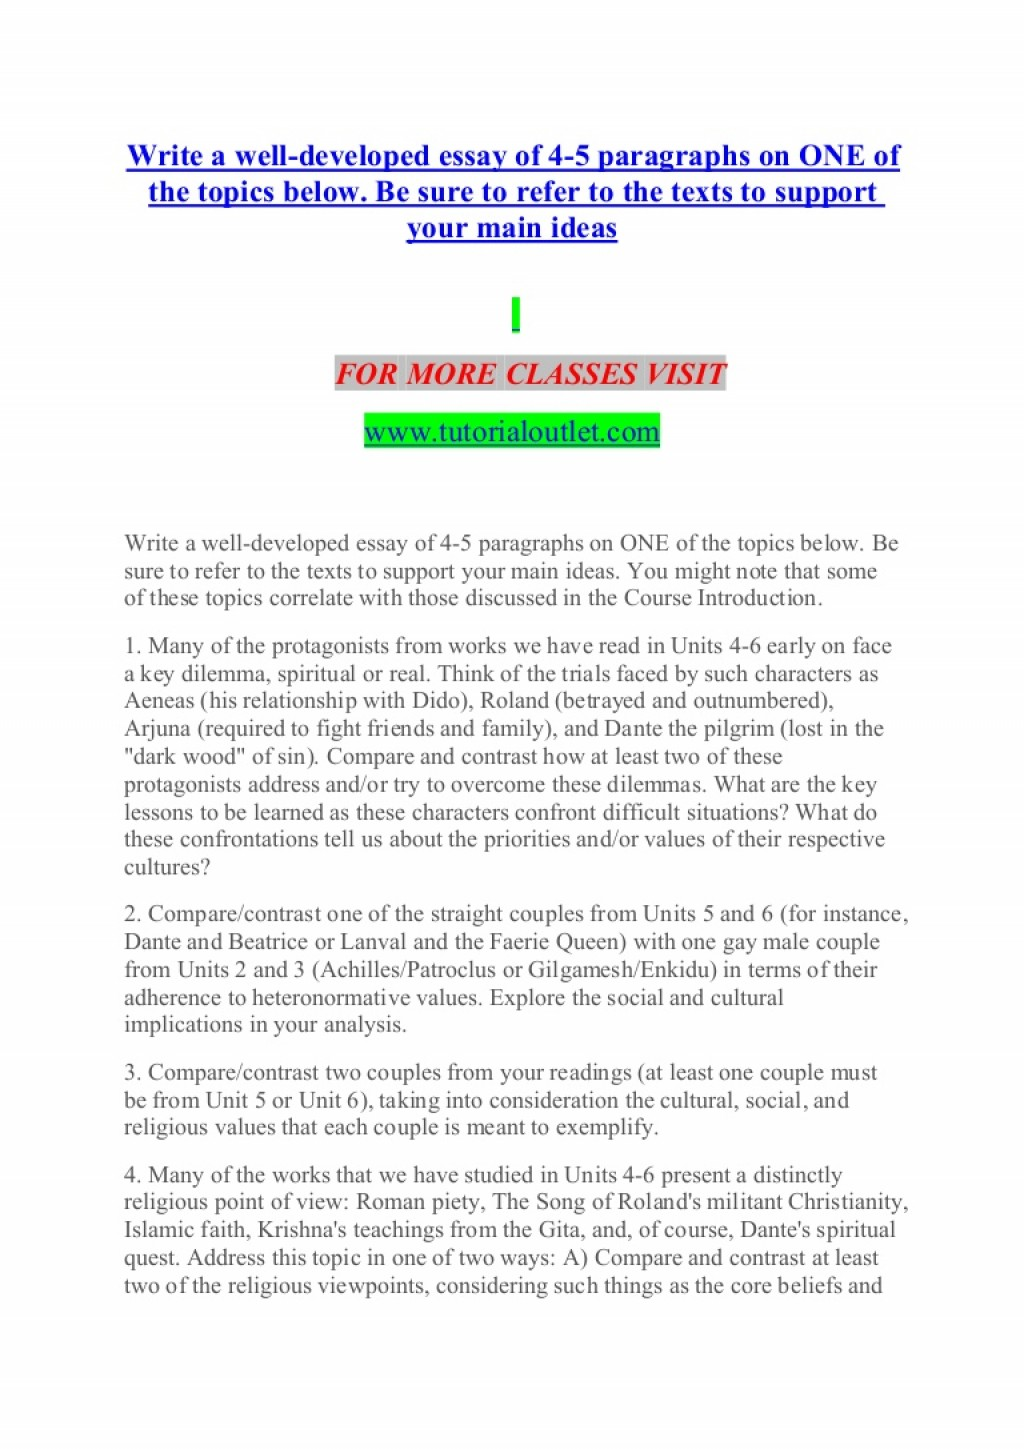 005 Compare And Contrast Cultures Essay Topics Writeawell Developedessayof4 5paragraphsononeofthetopicsbelow Thumbnail Stirring Large